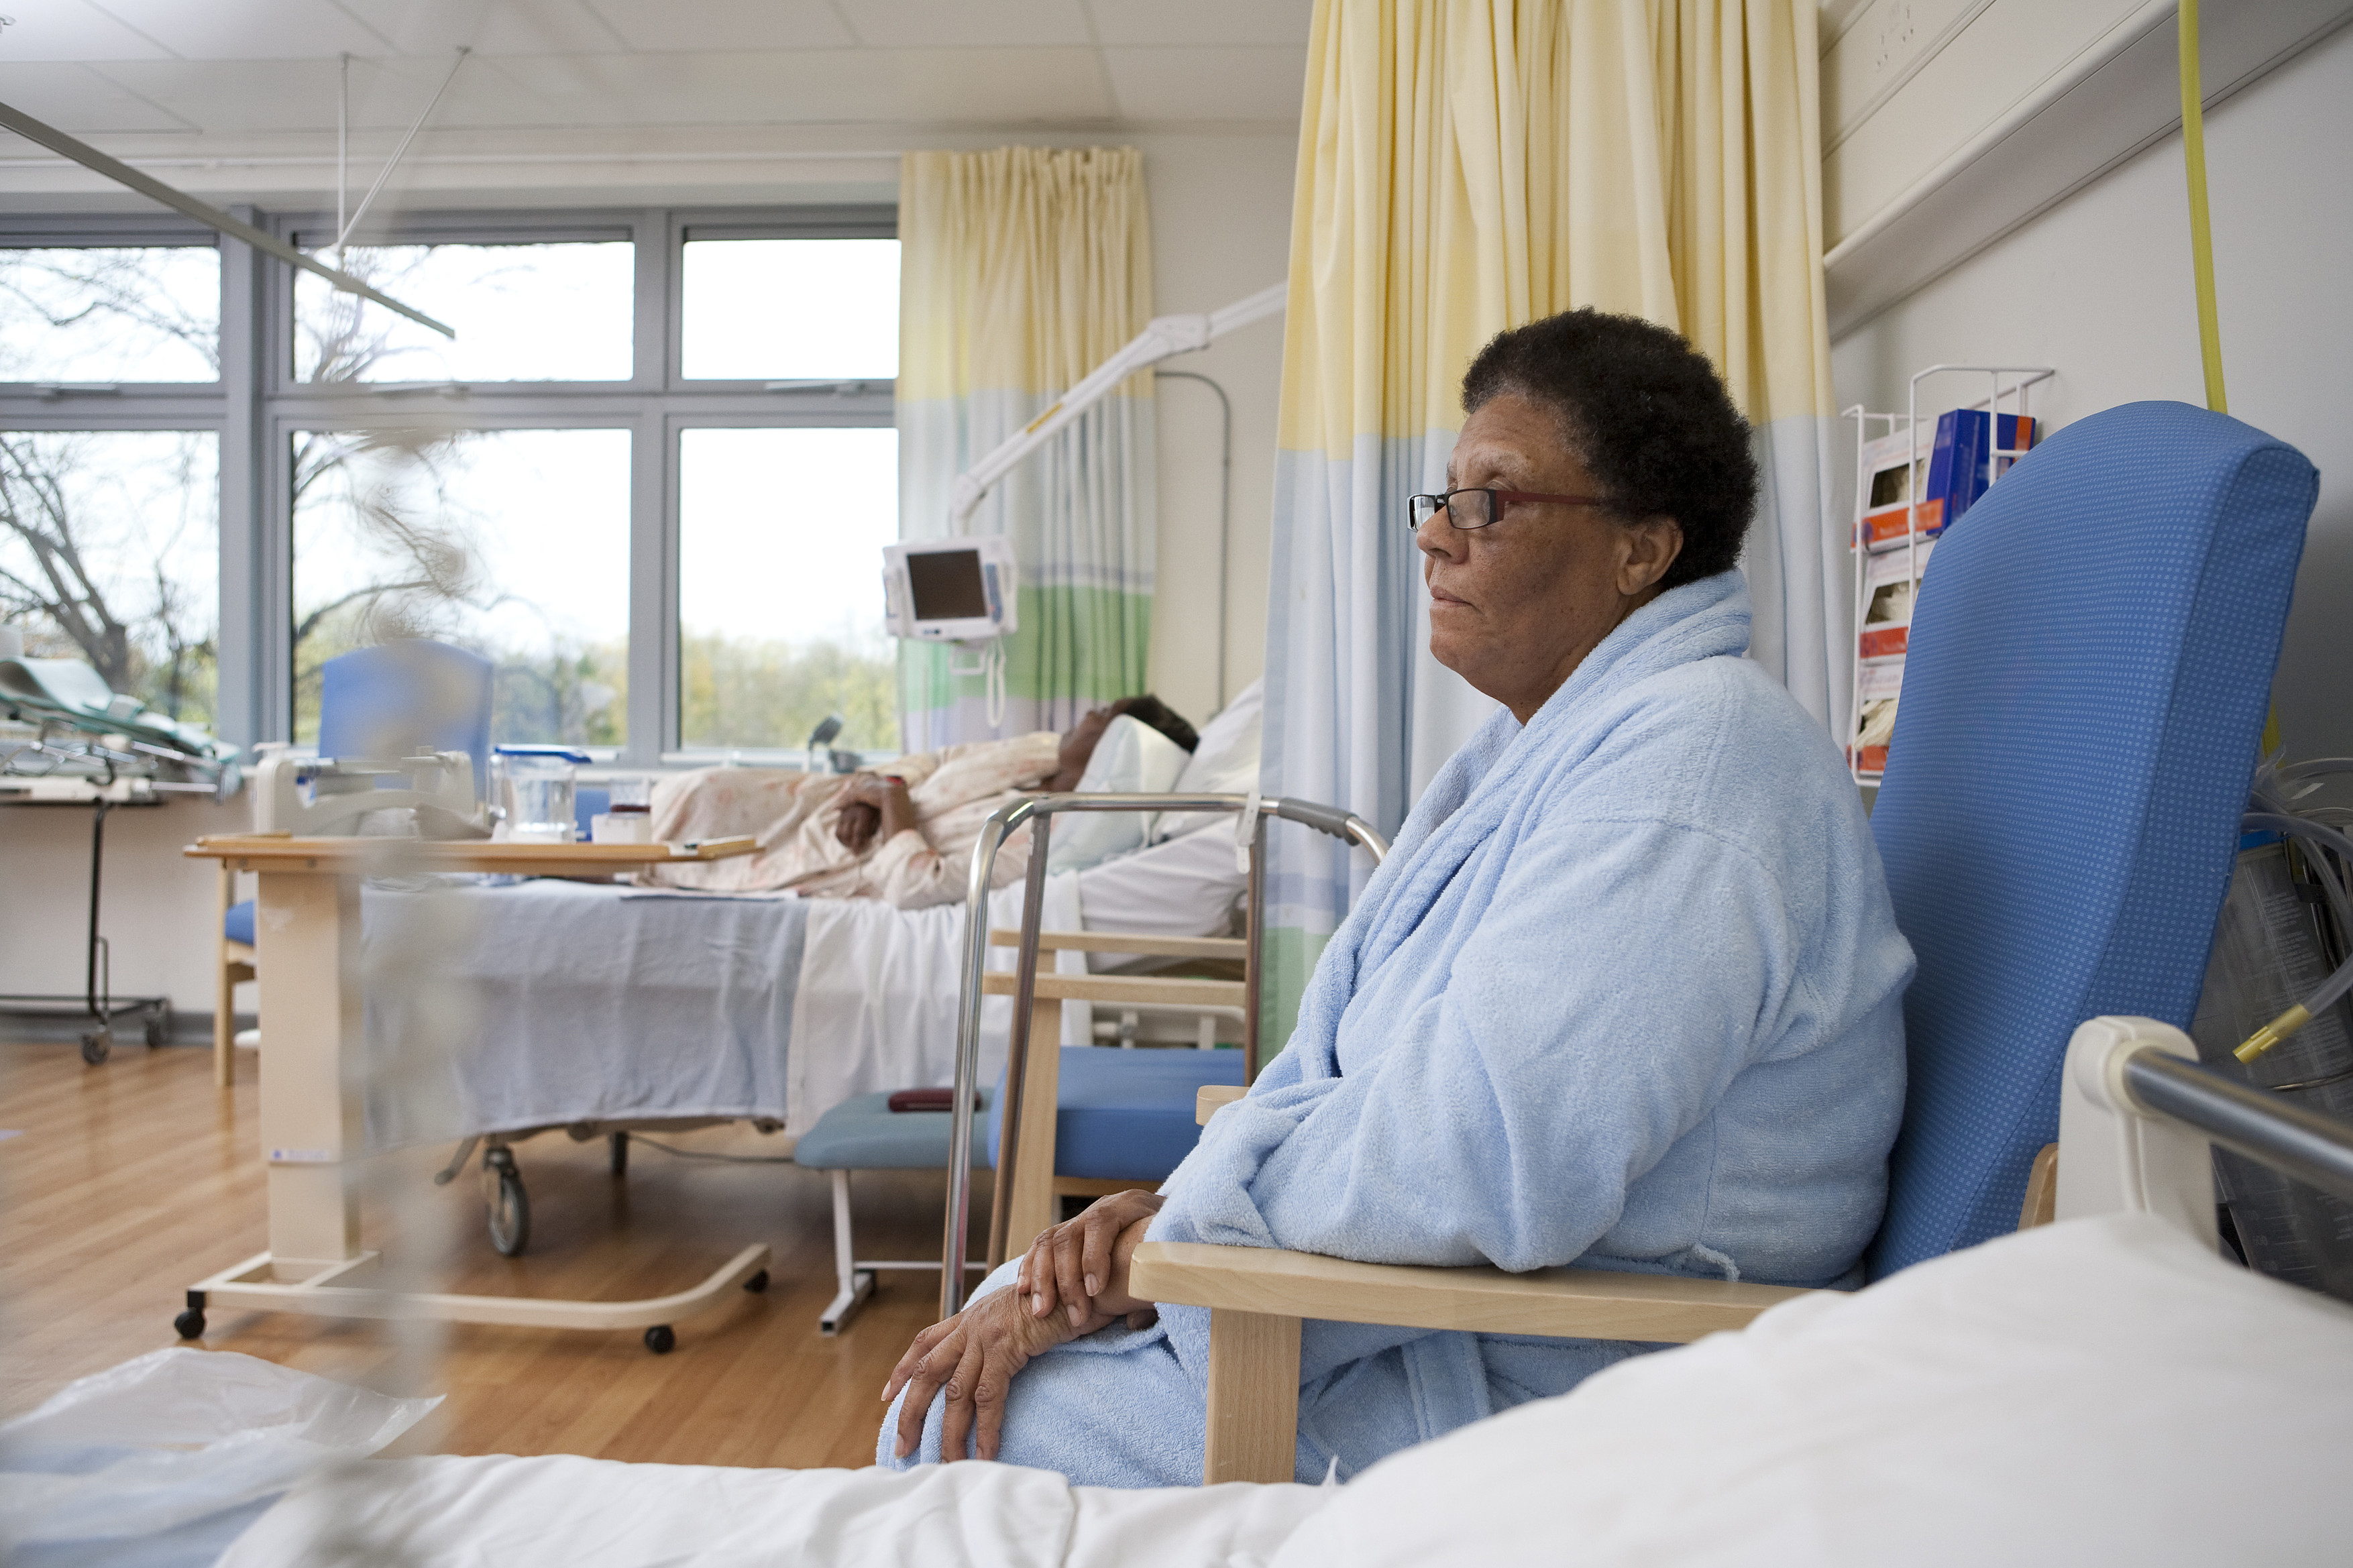 Portsmouth Hospitals NHS Trust rated one of most improved trusts in country by cancer patients